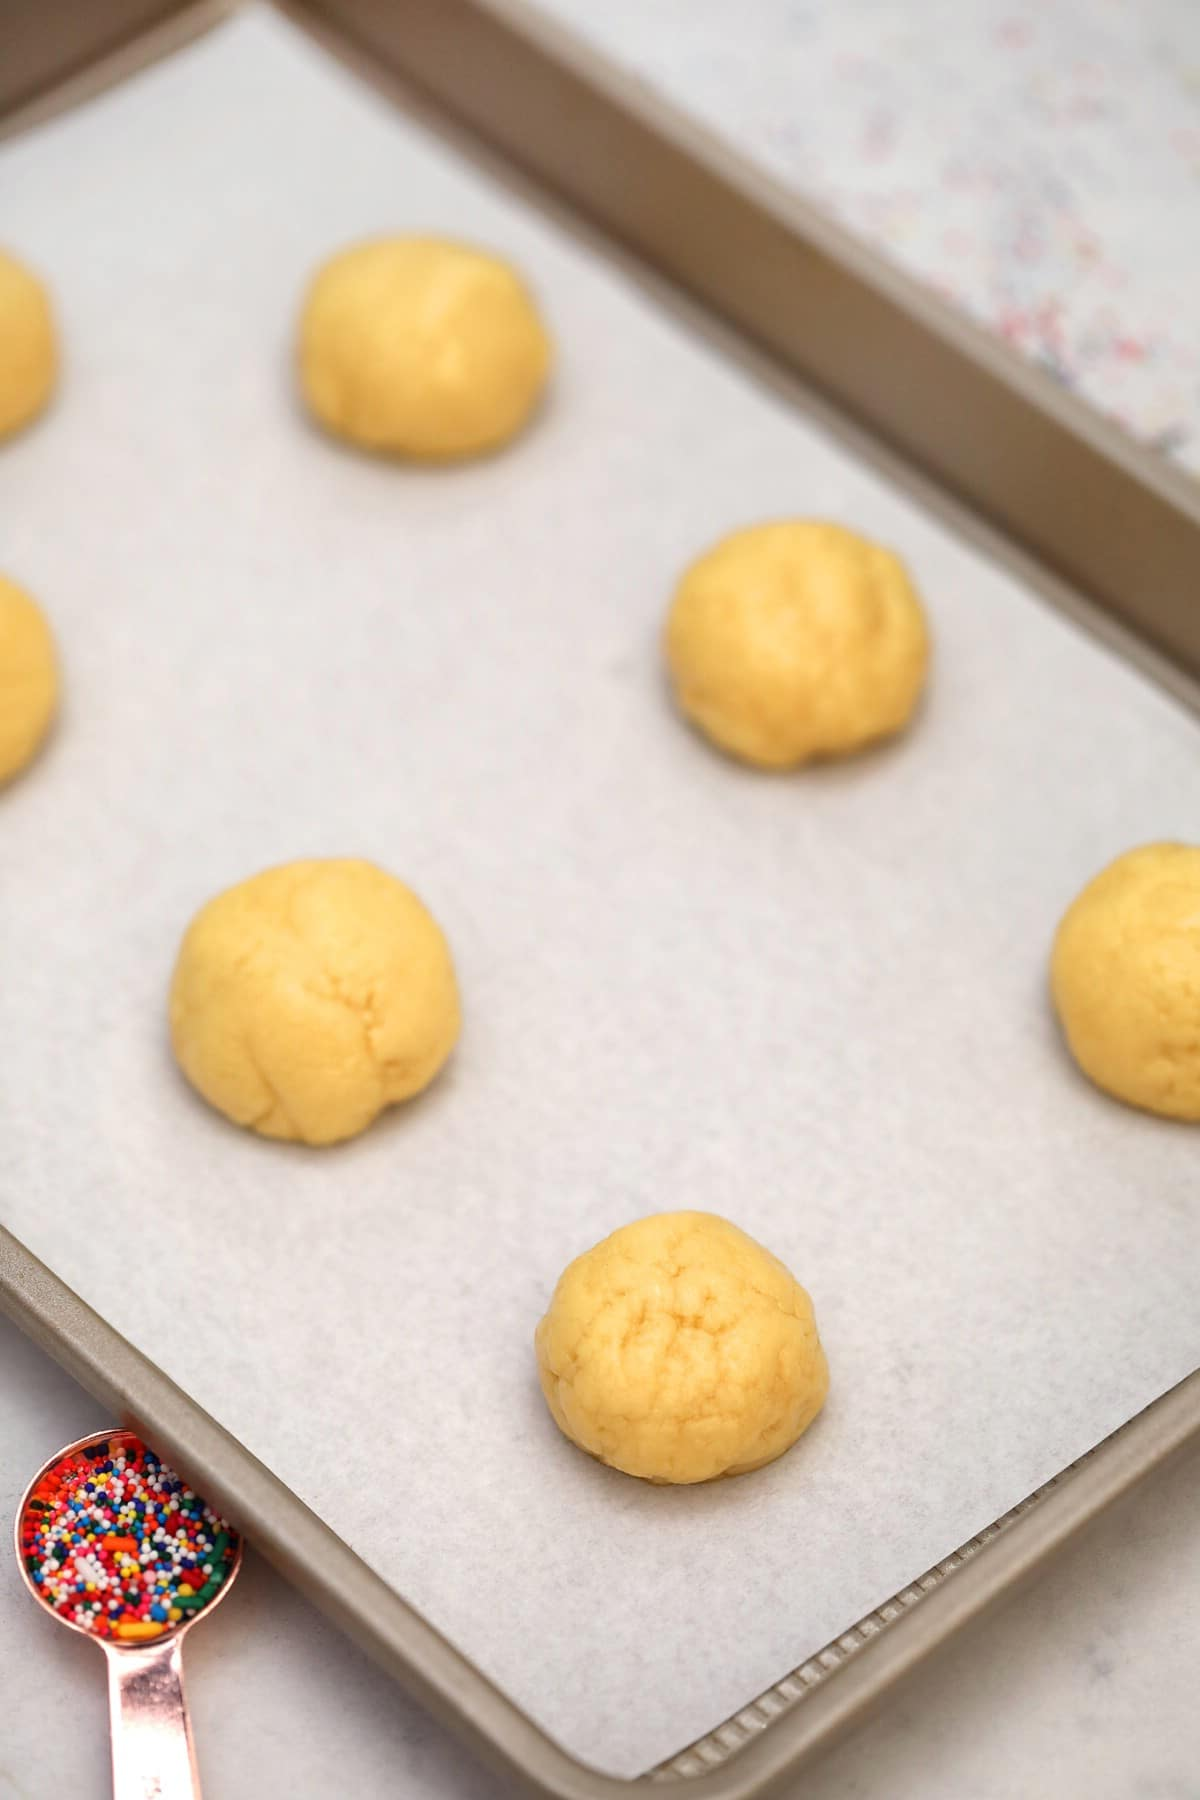 Cookie dough on baking sheet